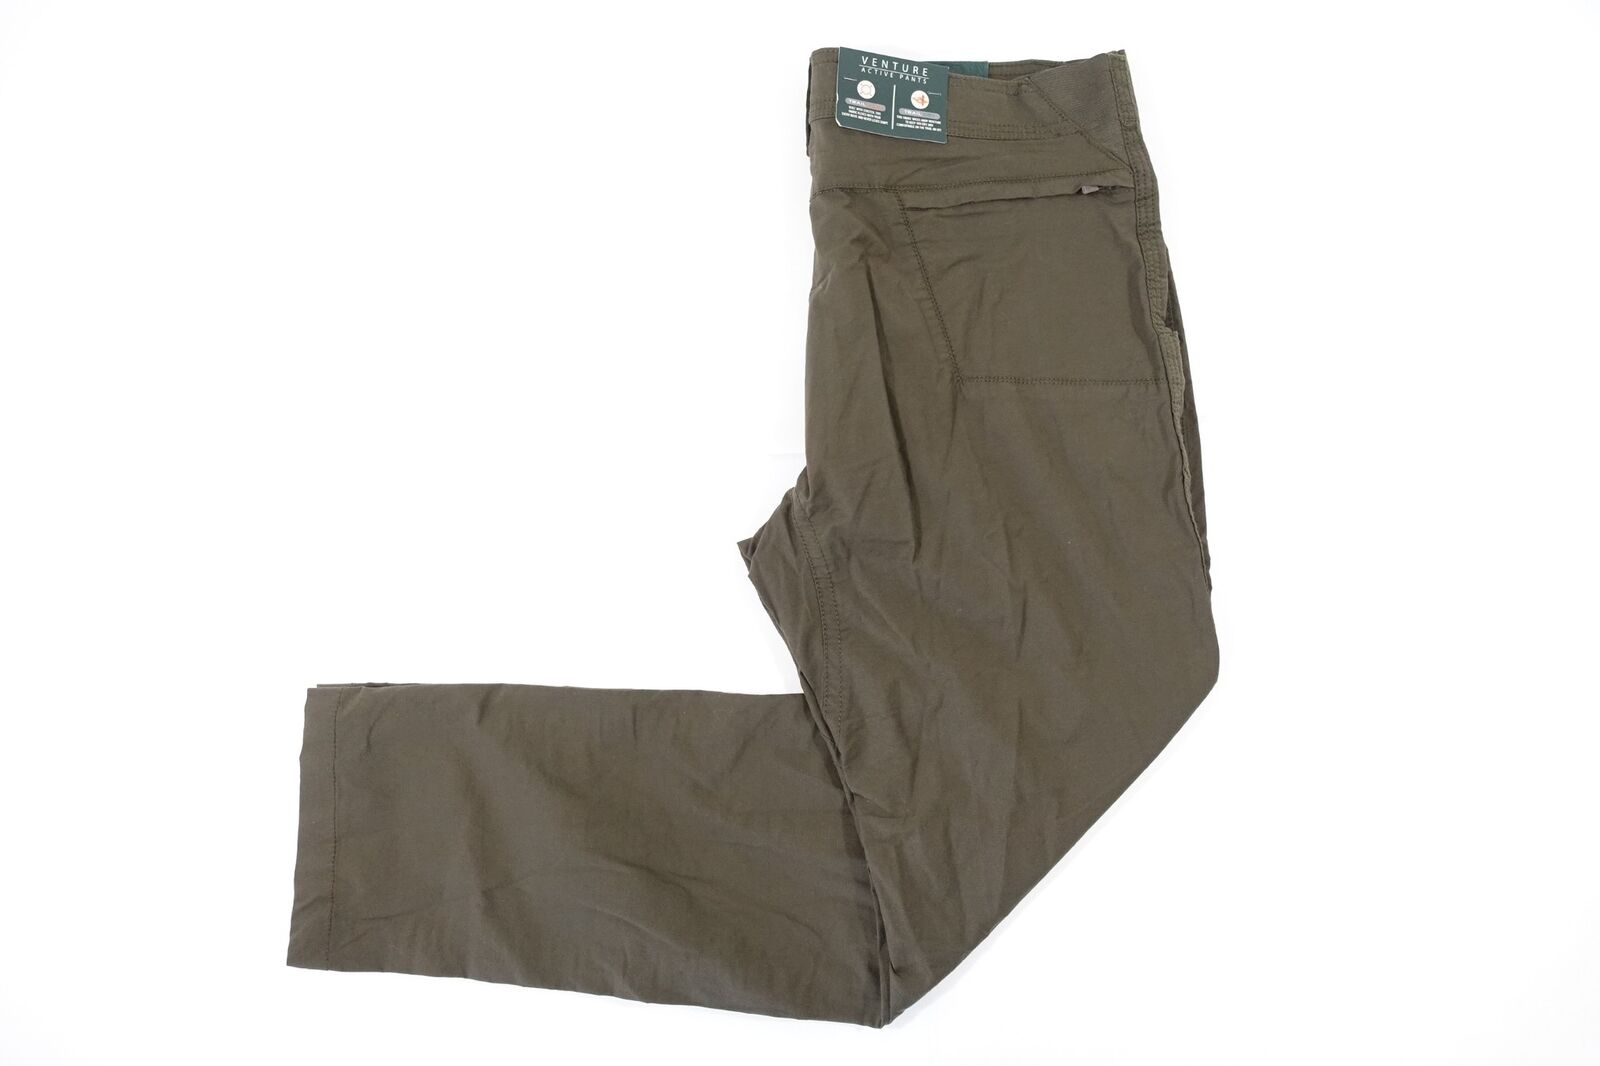 G.H. BASS & CO DARK BROWN 34X32 TRAIL FLEX DRY VENTURE ACTIVE PANTS MENS NWT NEW